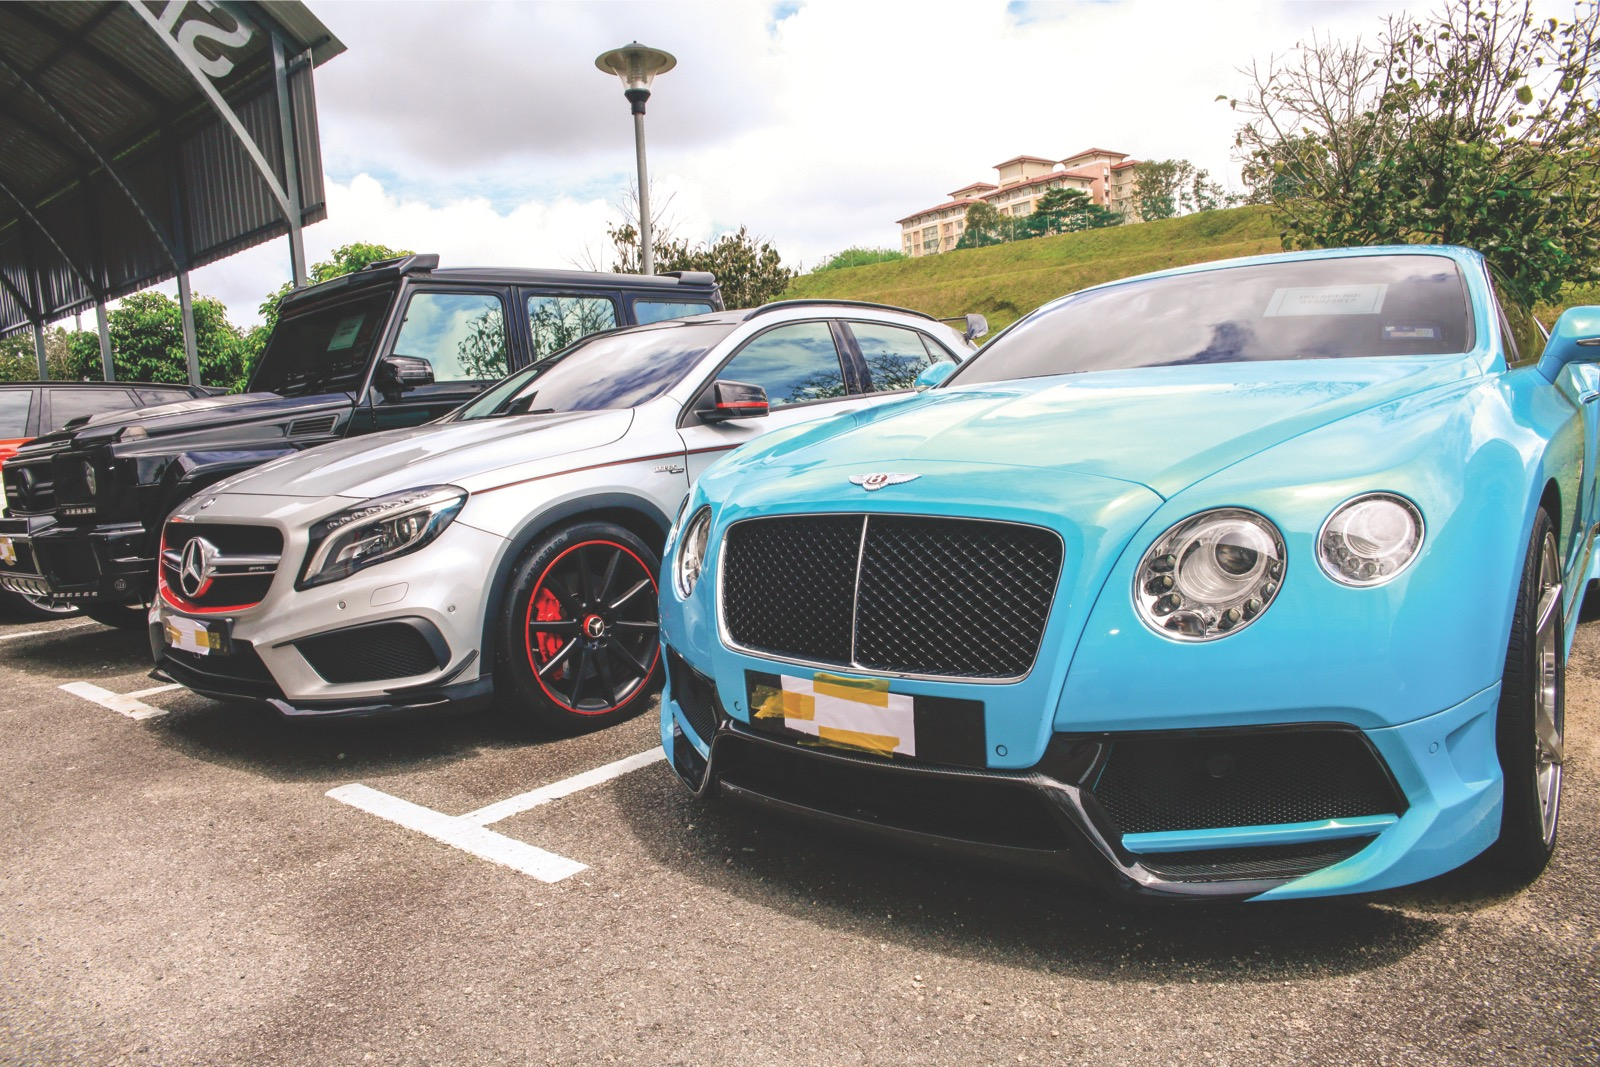 Luxury cars owned  by Ahmad Fauzan. — Picture by Malay Mail